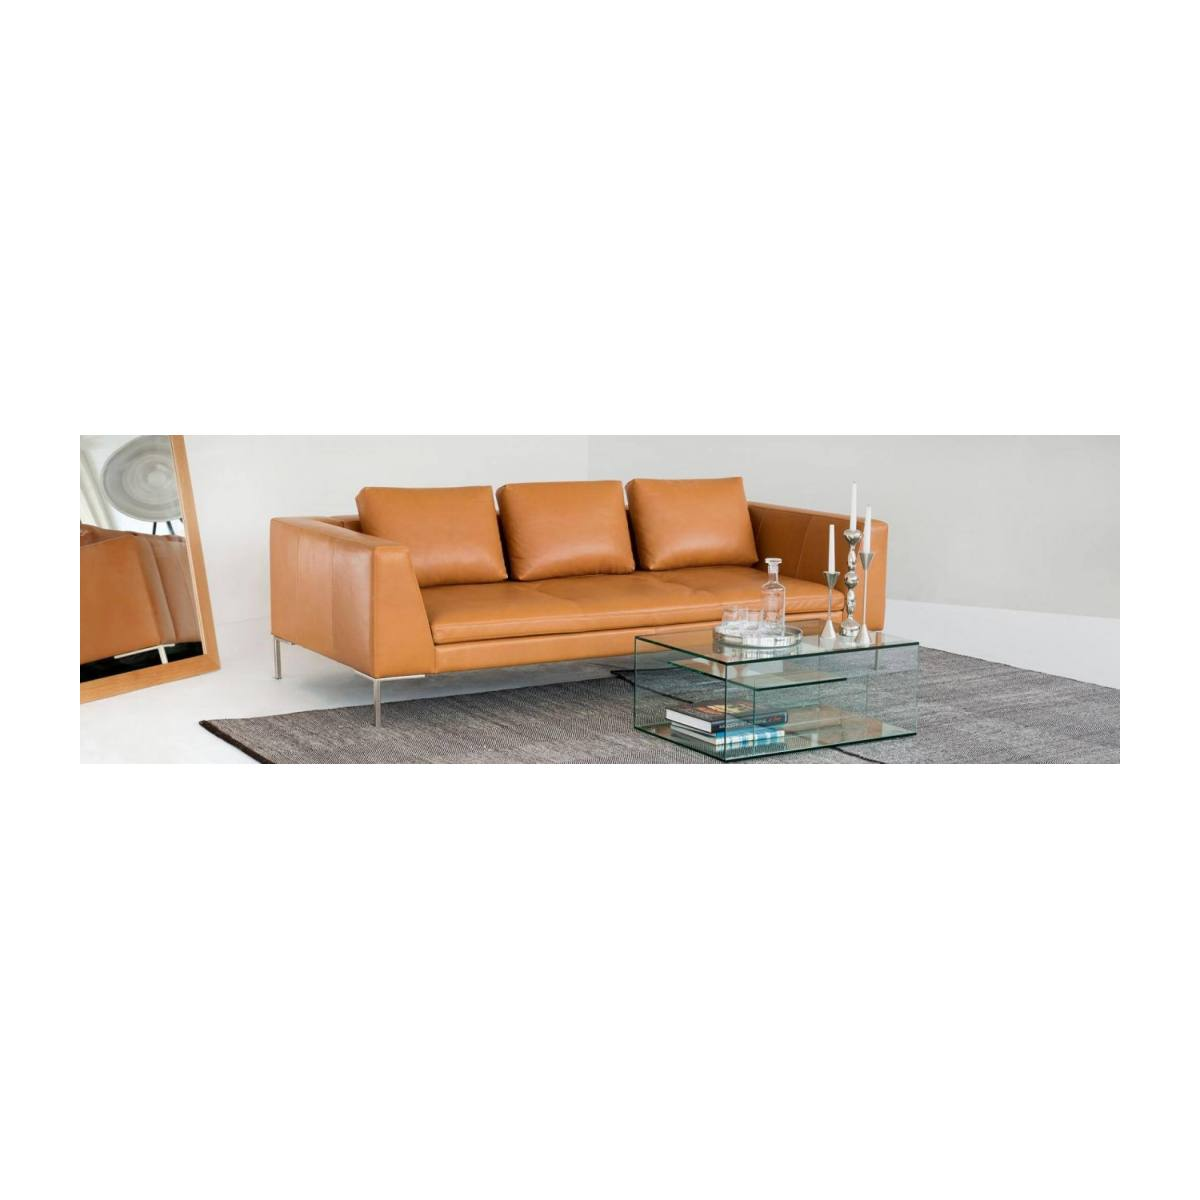 3 seater sofa in Eton veined leather, brown n°10